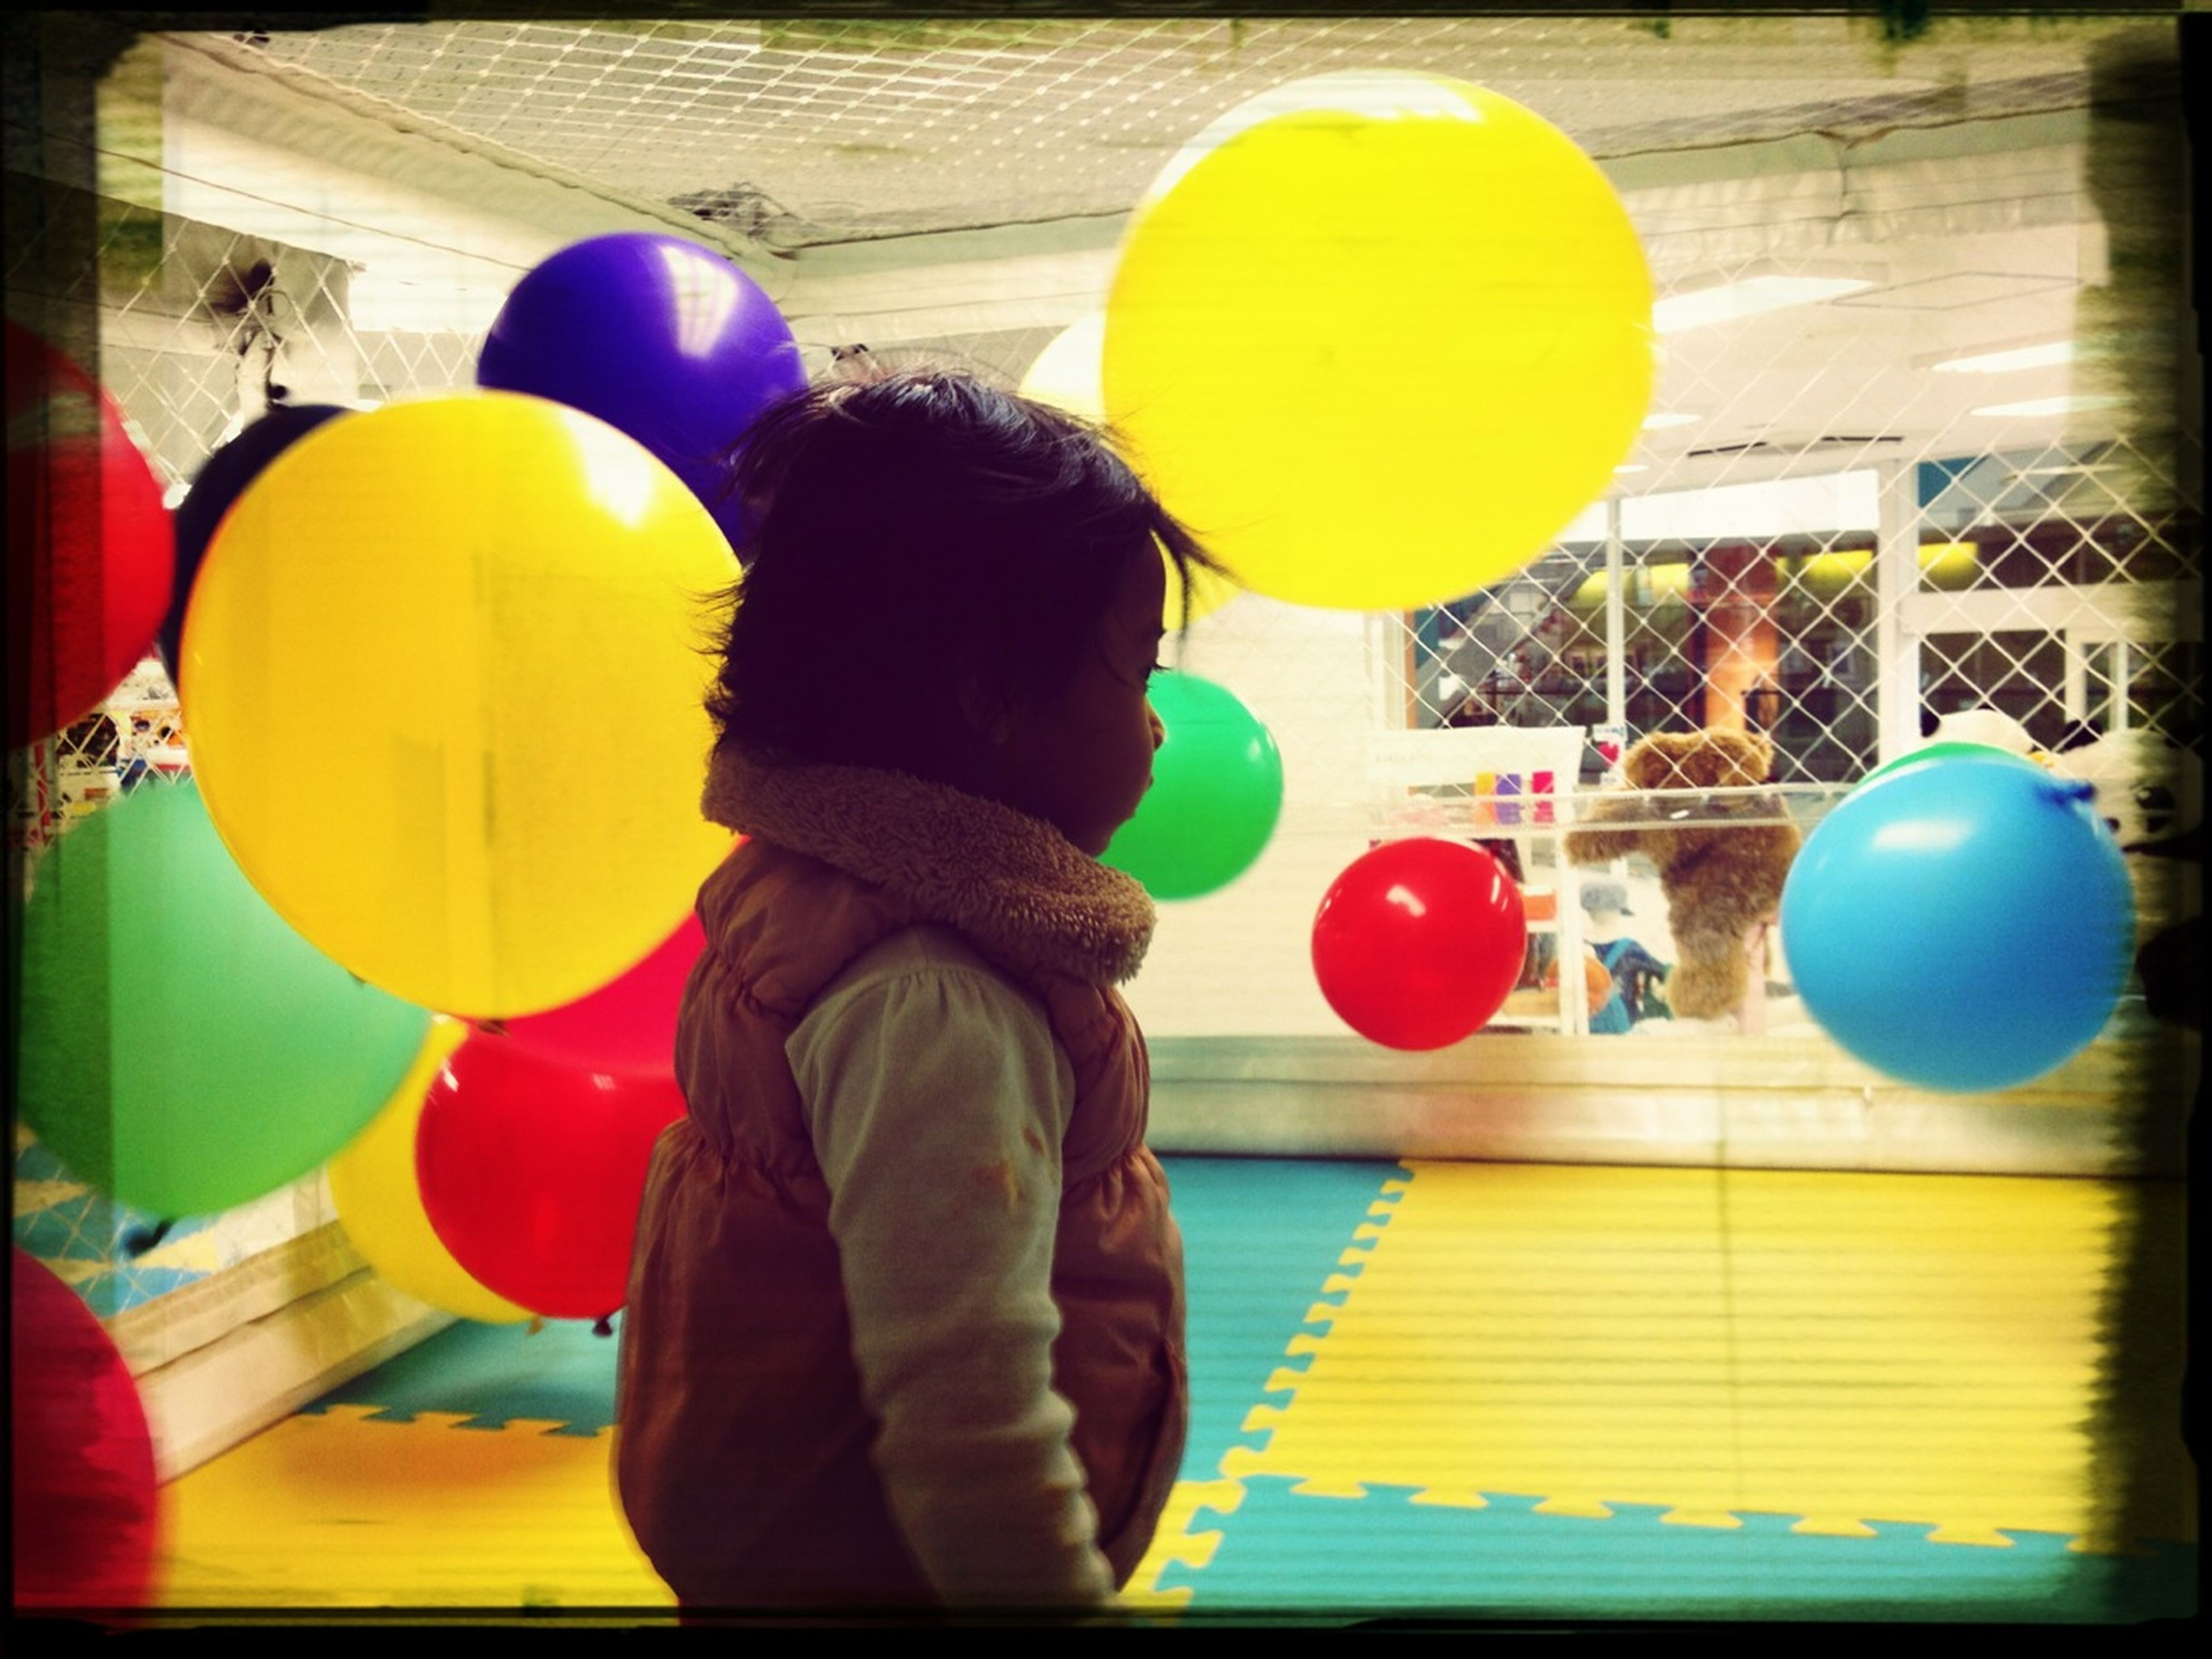 transfer print, childhood, lifestyles, leisure activity, rear view, auto post production filter, elementary age, boys, balloon, multi colored, playing, standing, yellow, girls, holding, ball, casual clothing, men